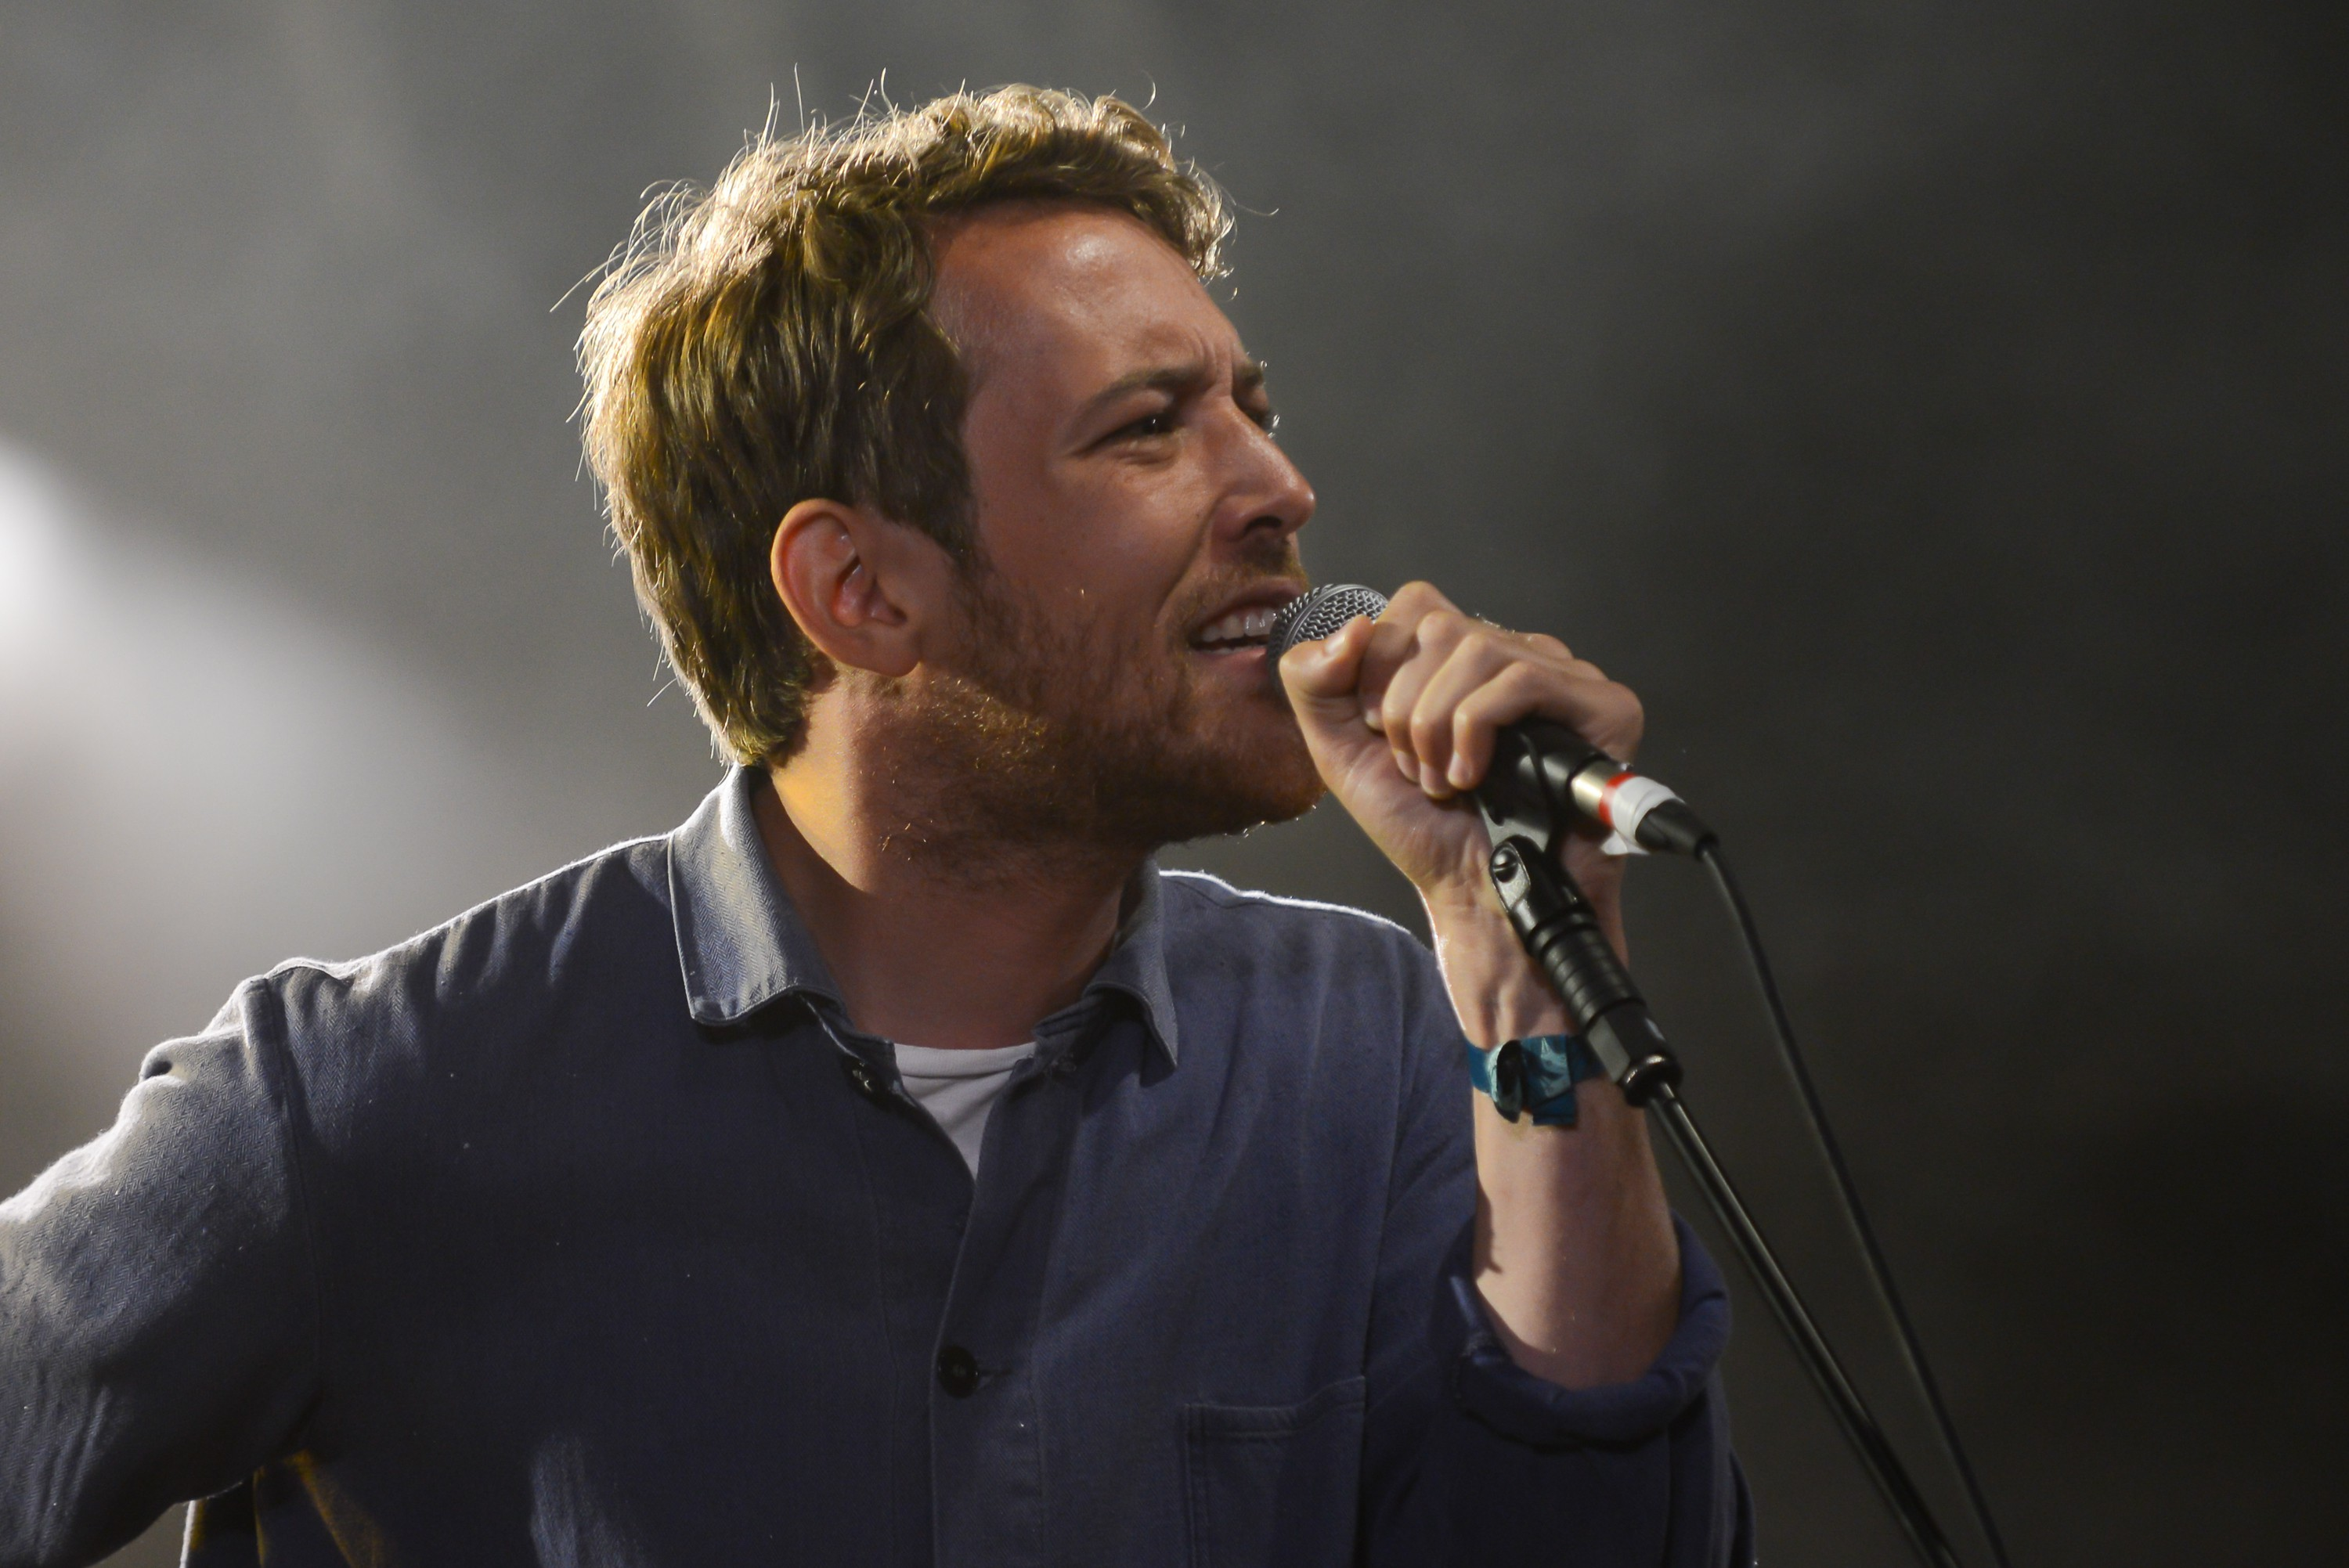 Robin Pecknold End Of The Road Festival 2014 - Day 1